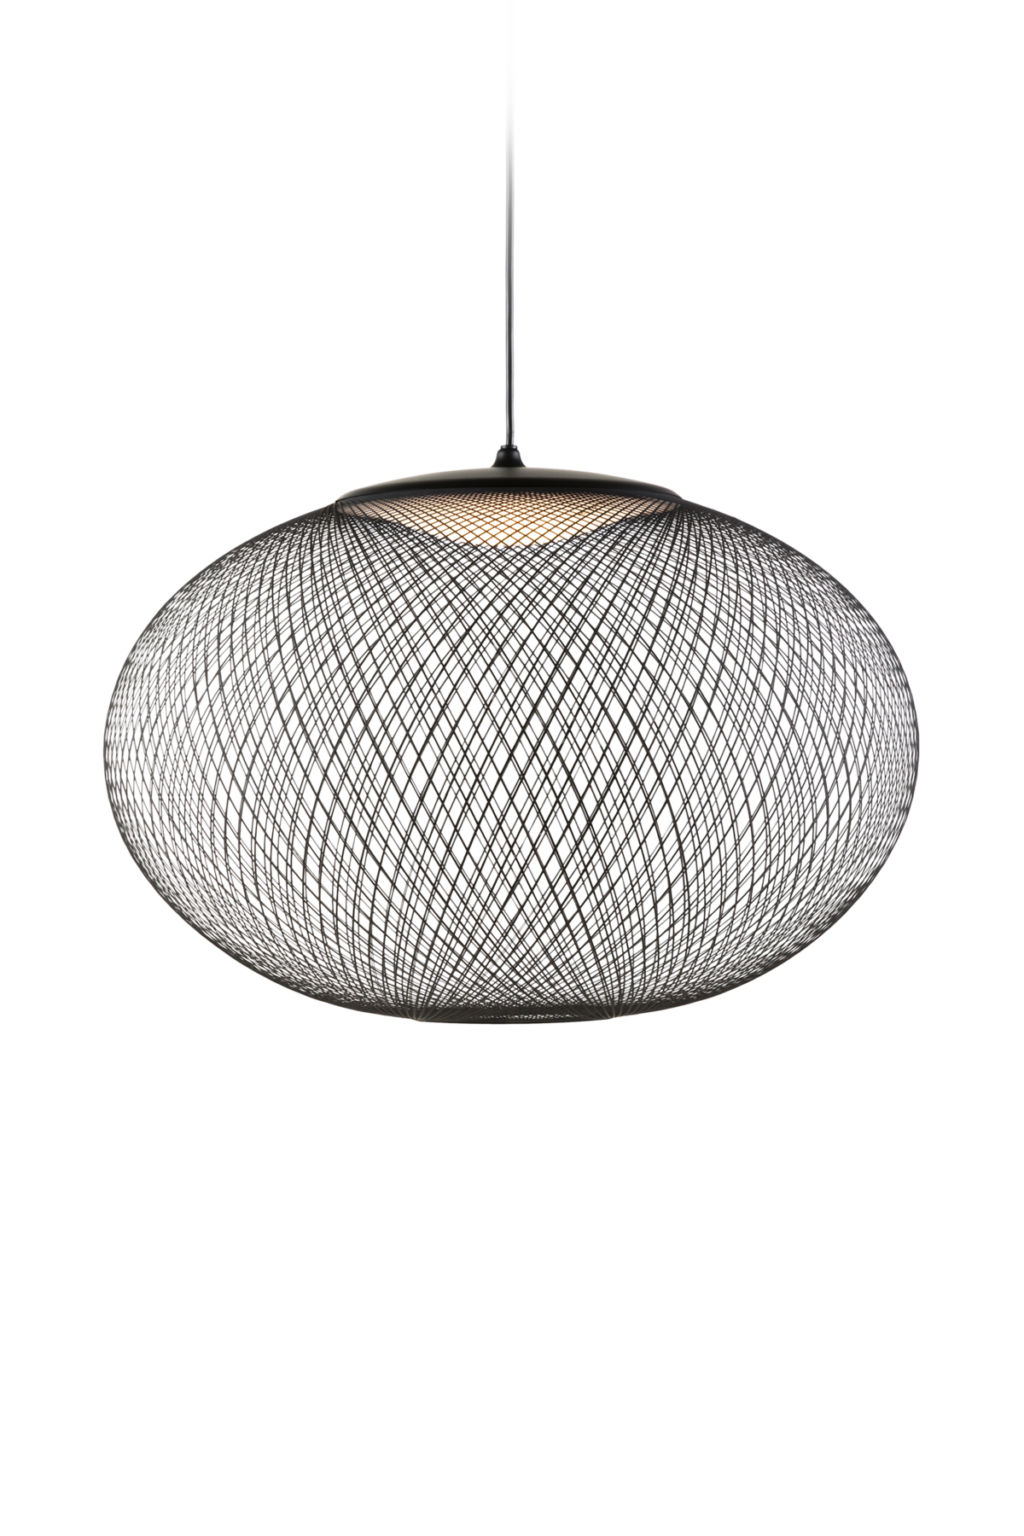 https://desidea.hu/wp-content/uploads/fly-images/159997/moooi-nr2-fuggesztett-lampa3-1024x0.png